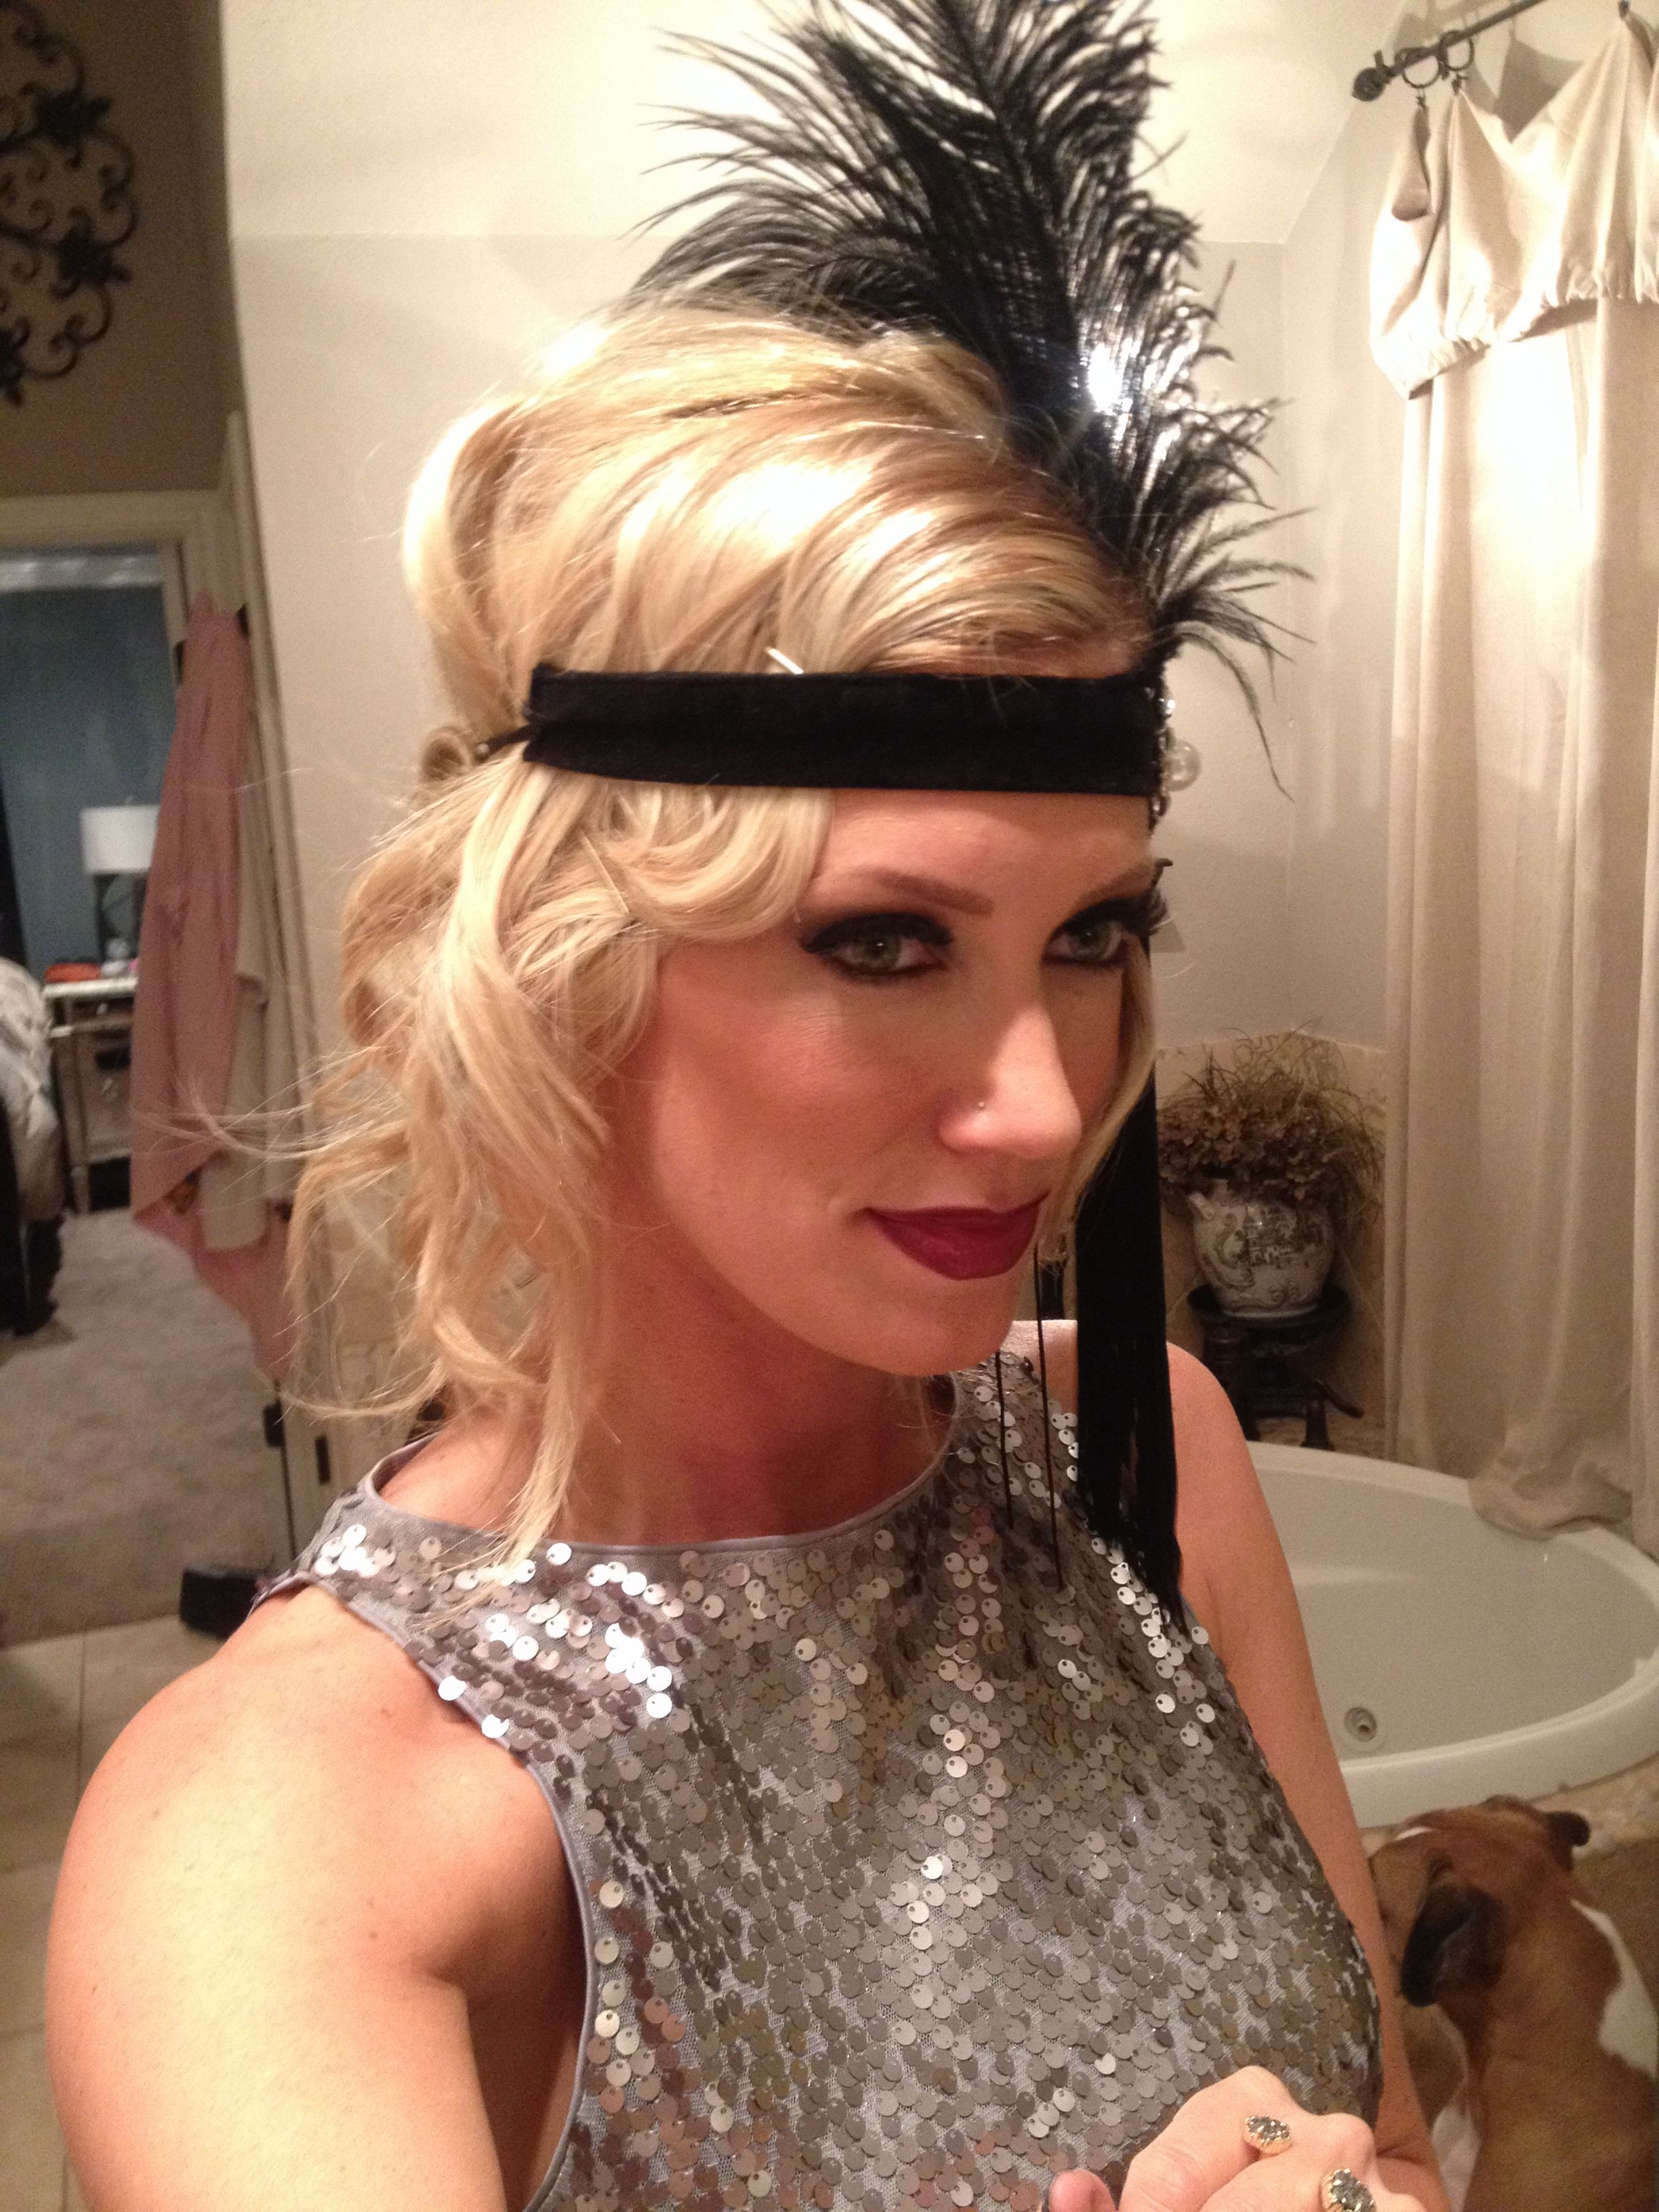 Great Gatsby Hair Style Flapper Hairstyle Gatsby Hair 20shair Party Flapper Flapperhair Gatsby Hair Hair Styles Gatsby Hairstyles For Long Hair